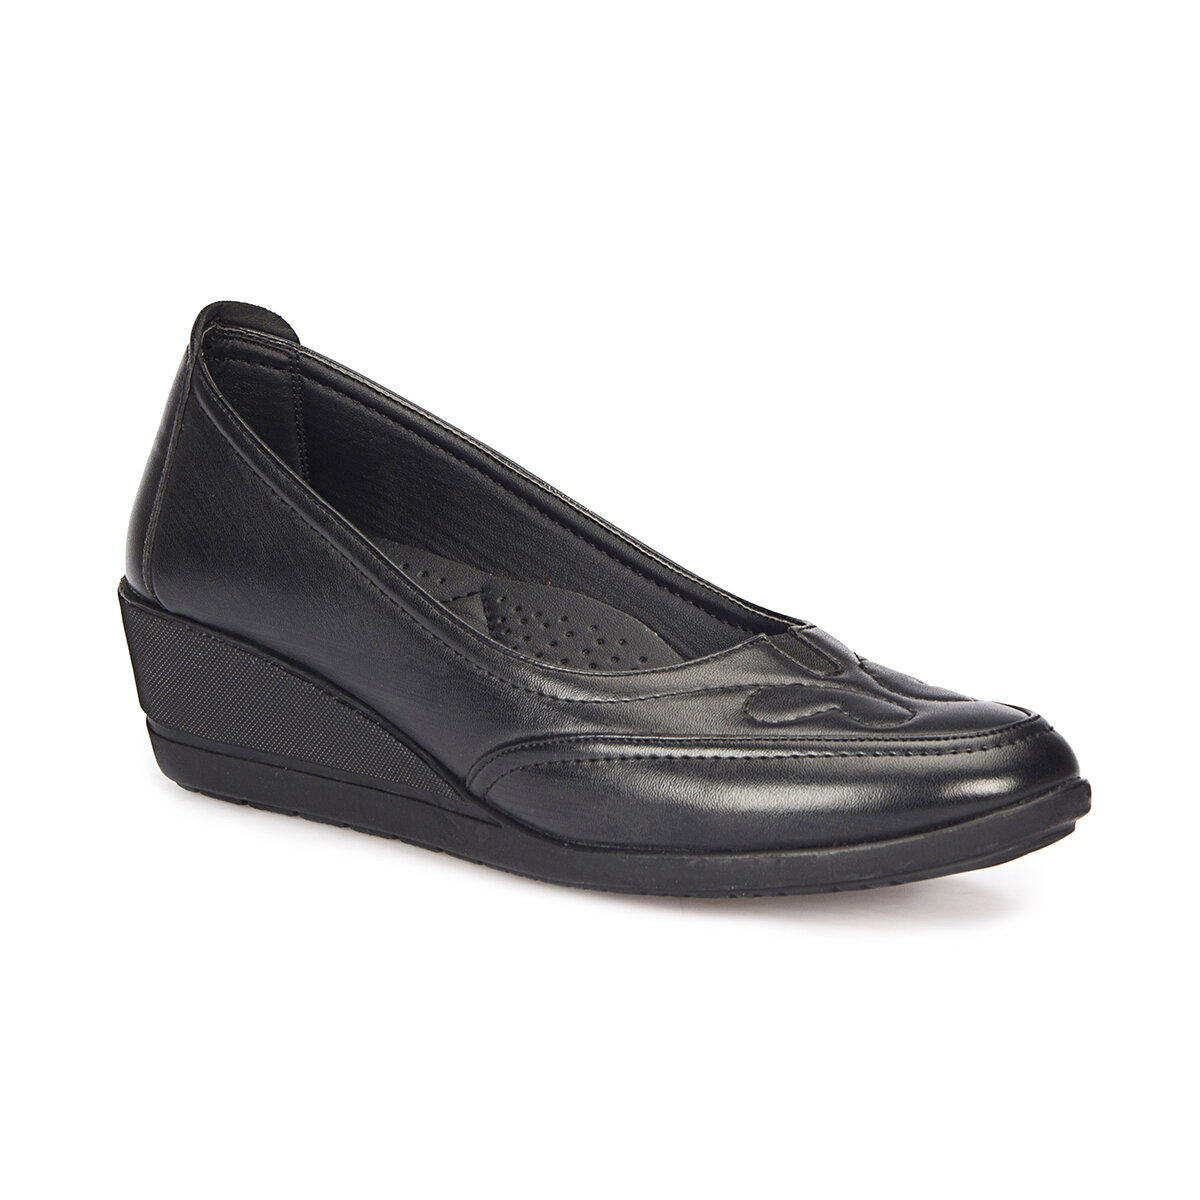 FLO 72.158045.Z Black Women Comfort Shoes Polaris